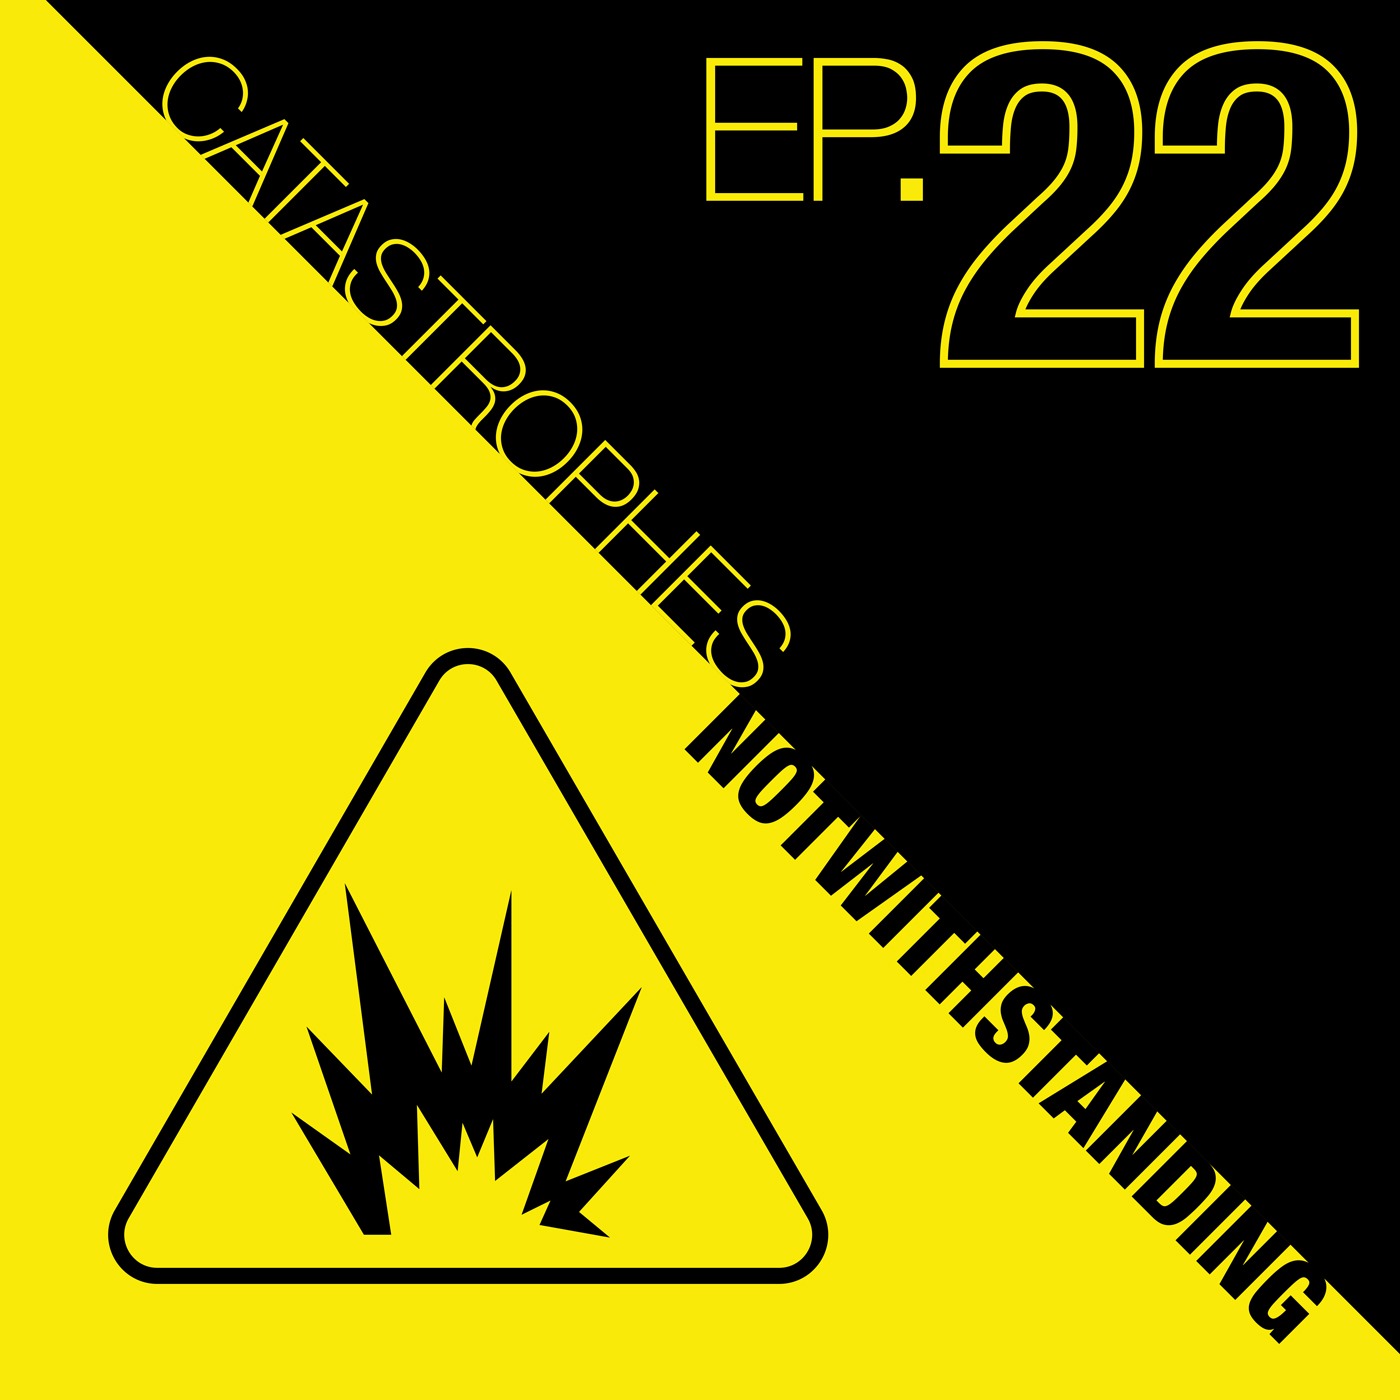 Cover Image of Catastrophes Notwithstanding Episode 22